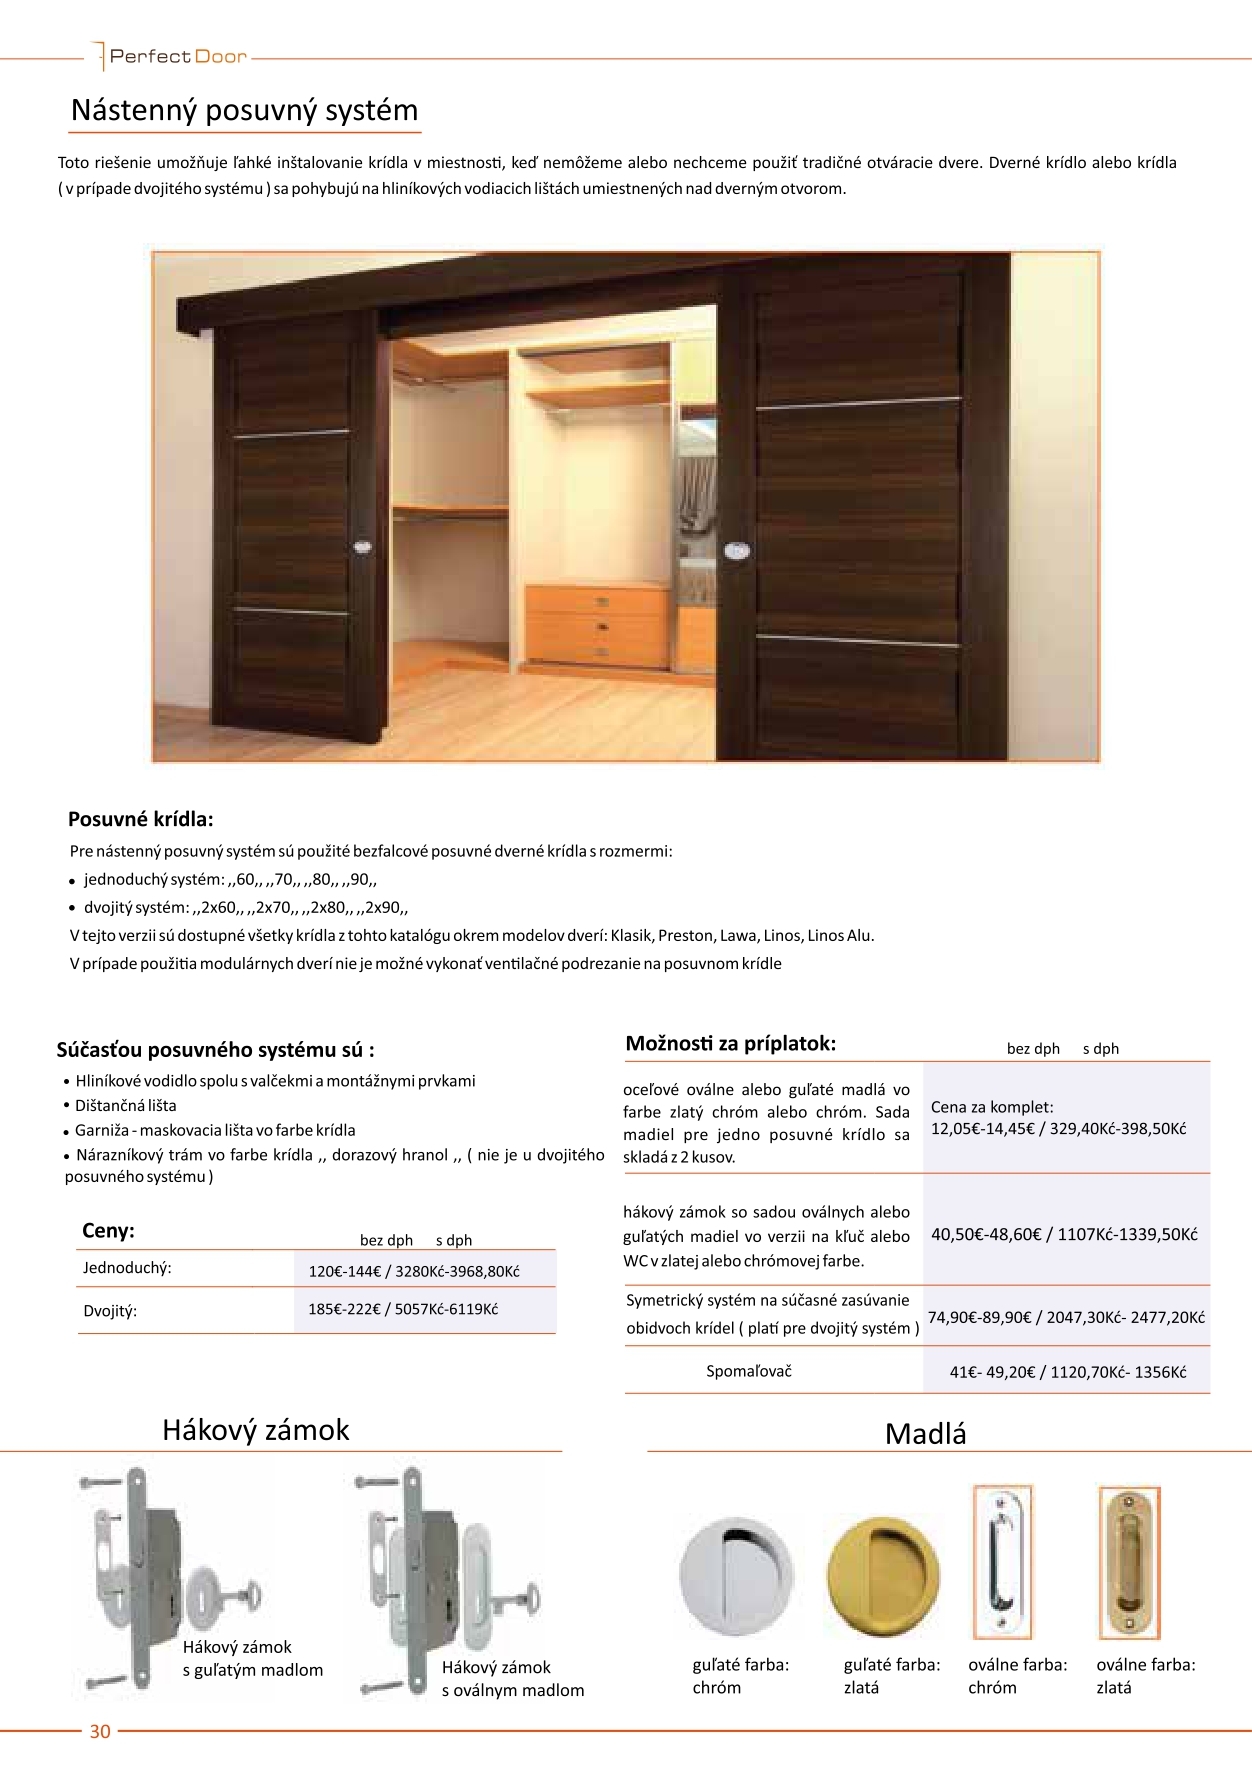 Perfectdoor katalog  1 2019 pages-to-jpg-0030